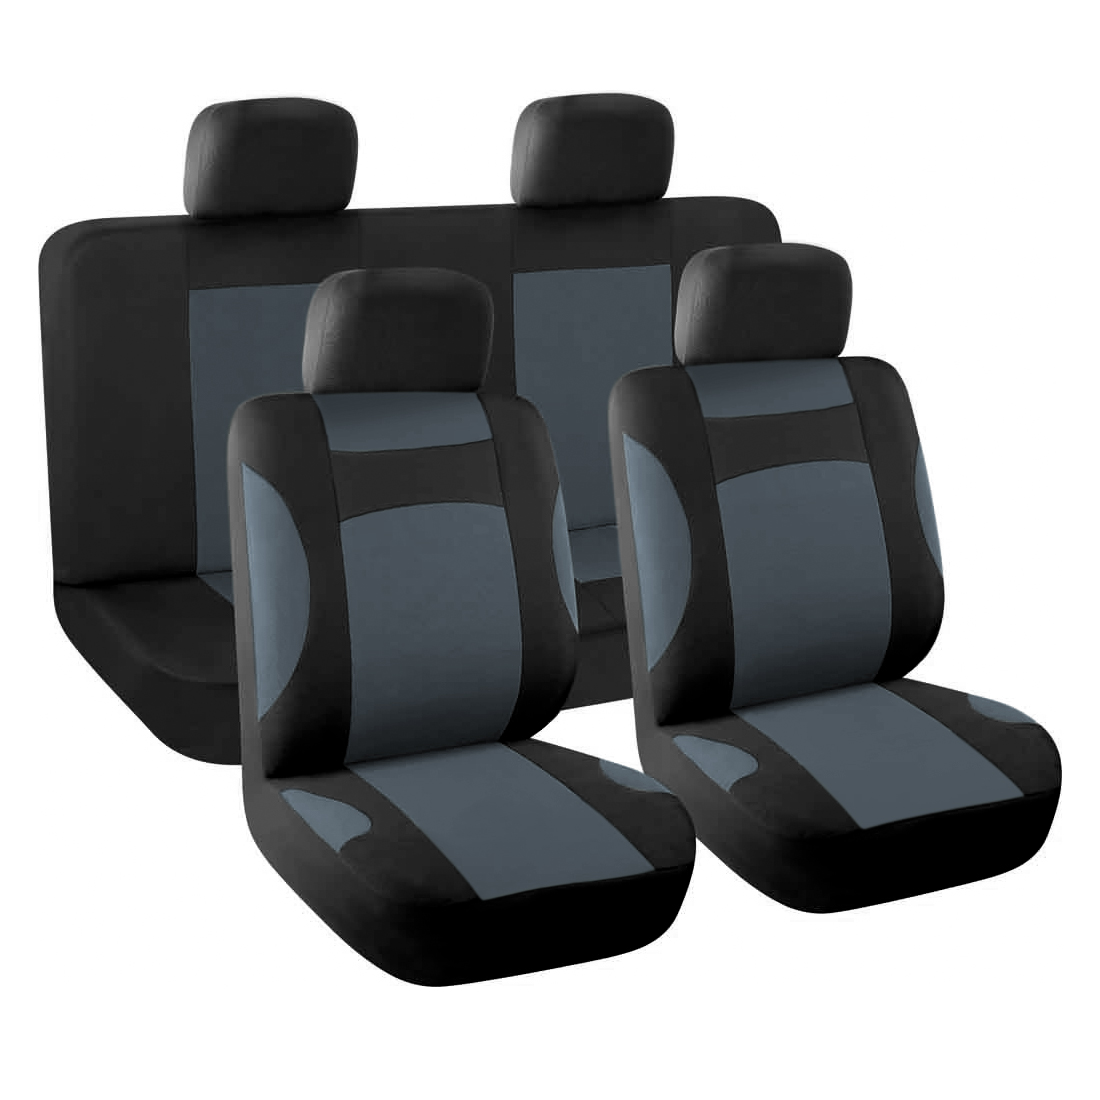 New Car Seat Covers Full Set for Auto w/ 4 Headrests